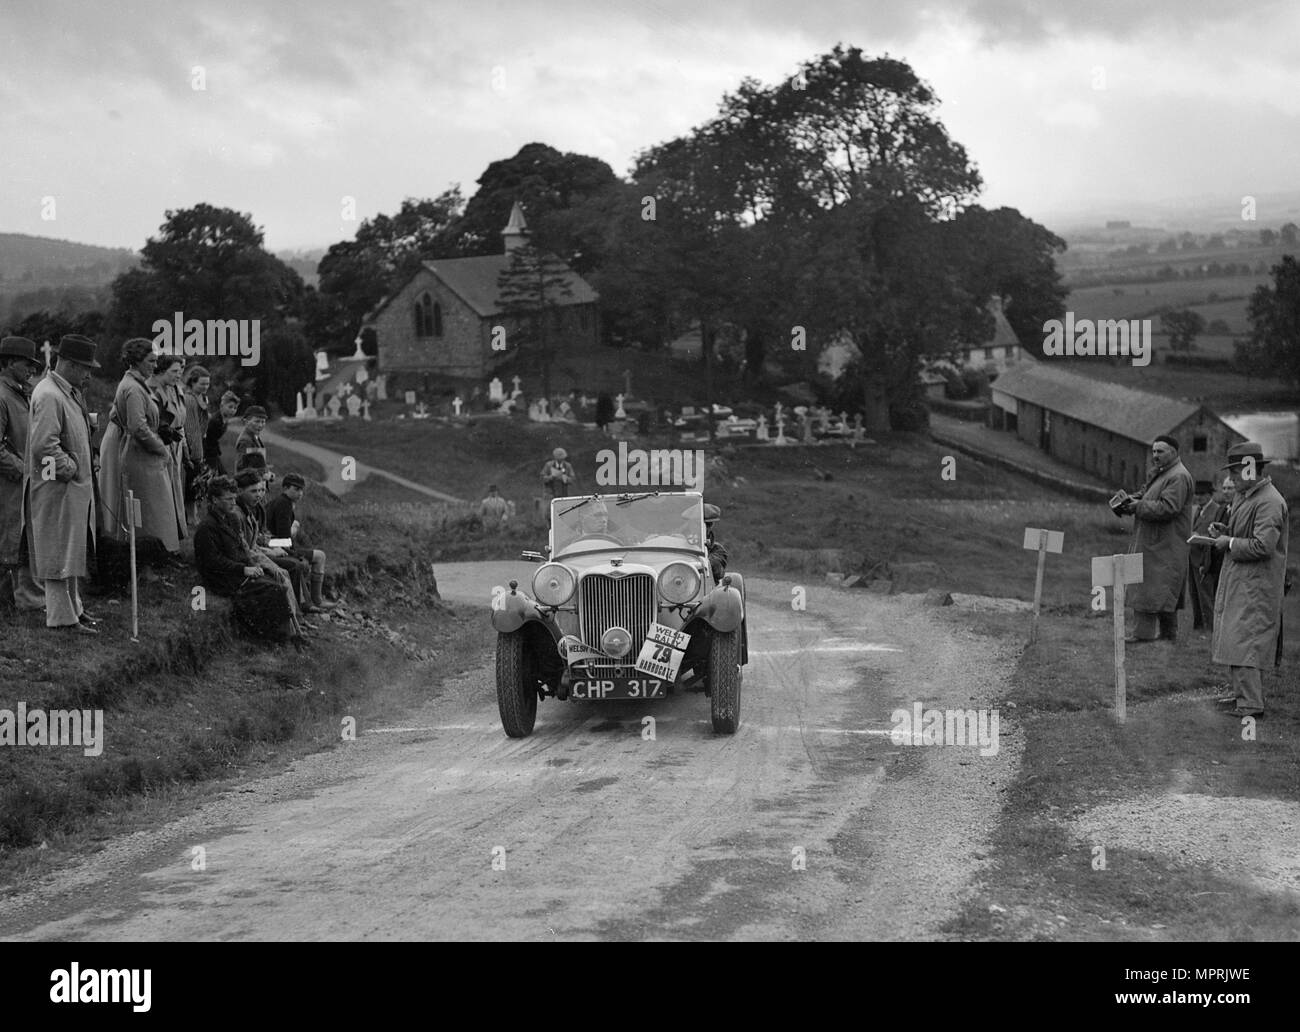 Singer B37 1.5 litre sports of WC Butler competing in the South Wales Auto Club Welsh Rally, 1937 Artist: Bill Brunell. - Stock Image